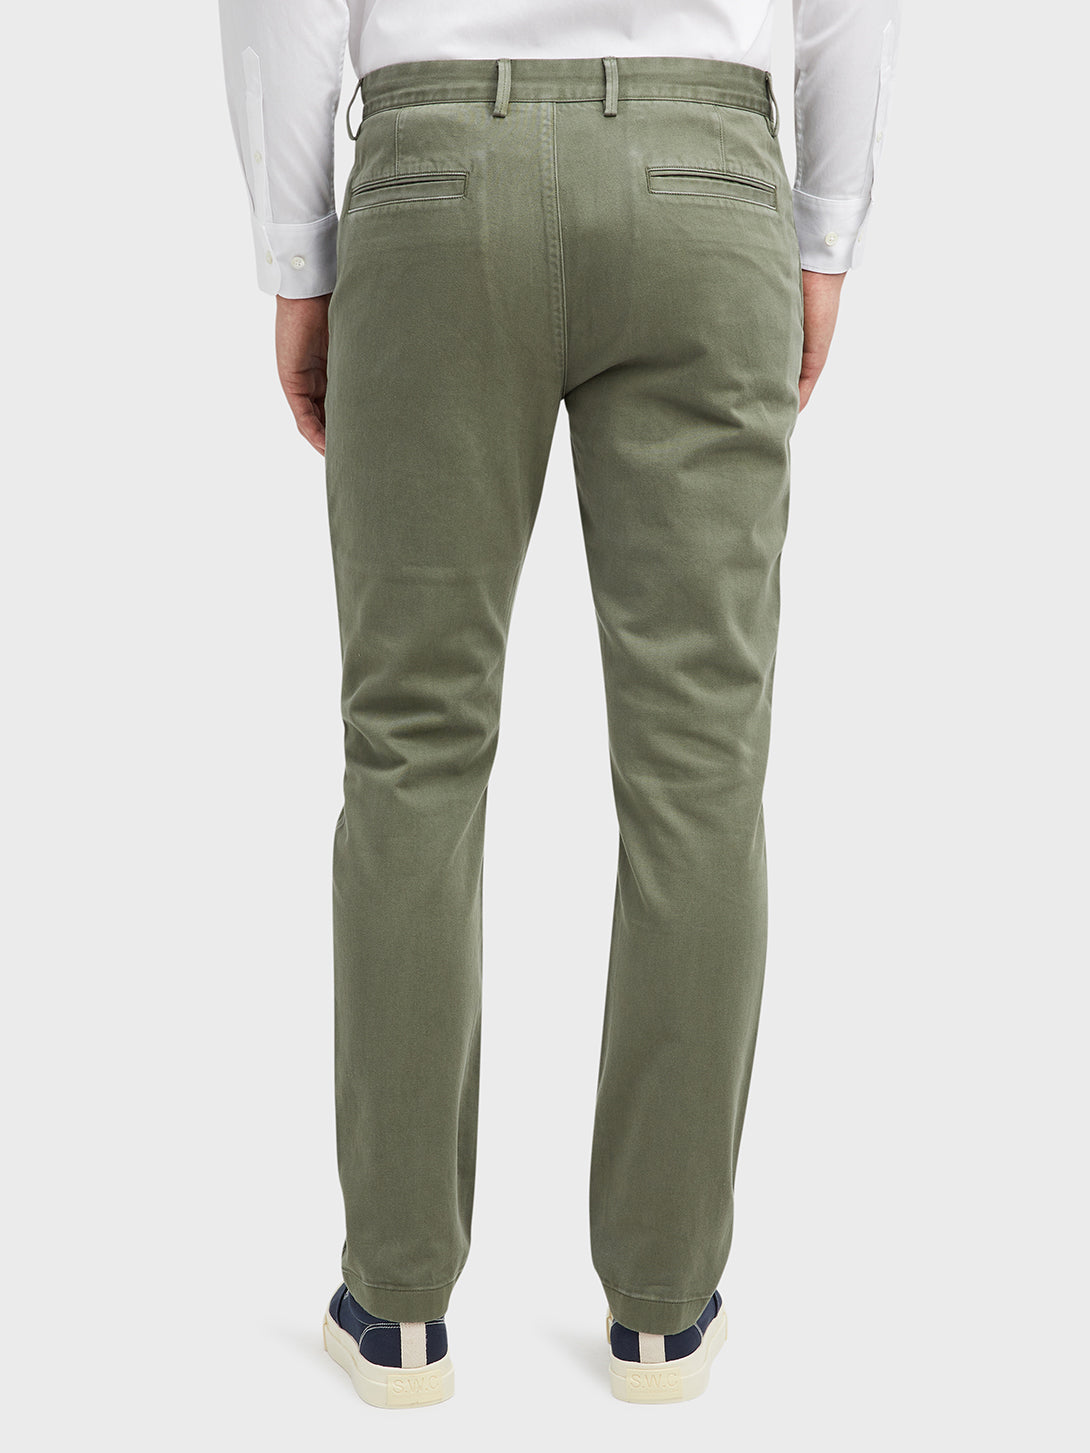 Green Clover Rider Chino Men's cotton pants ONS Clothing